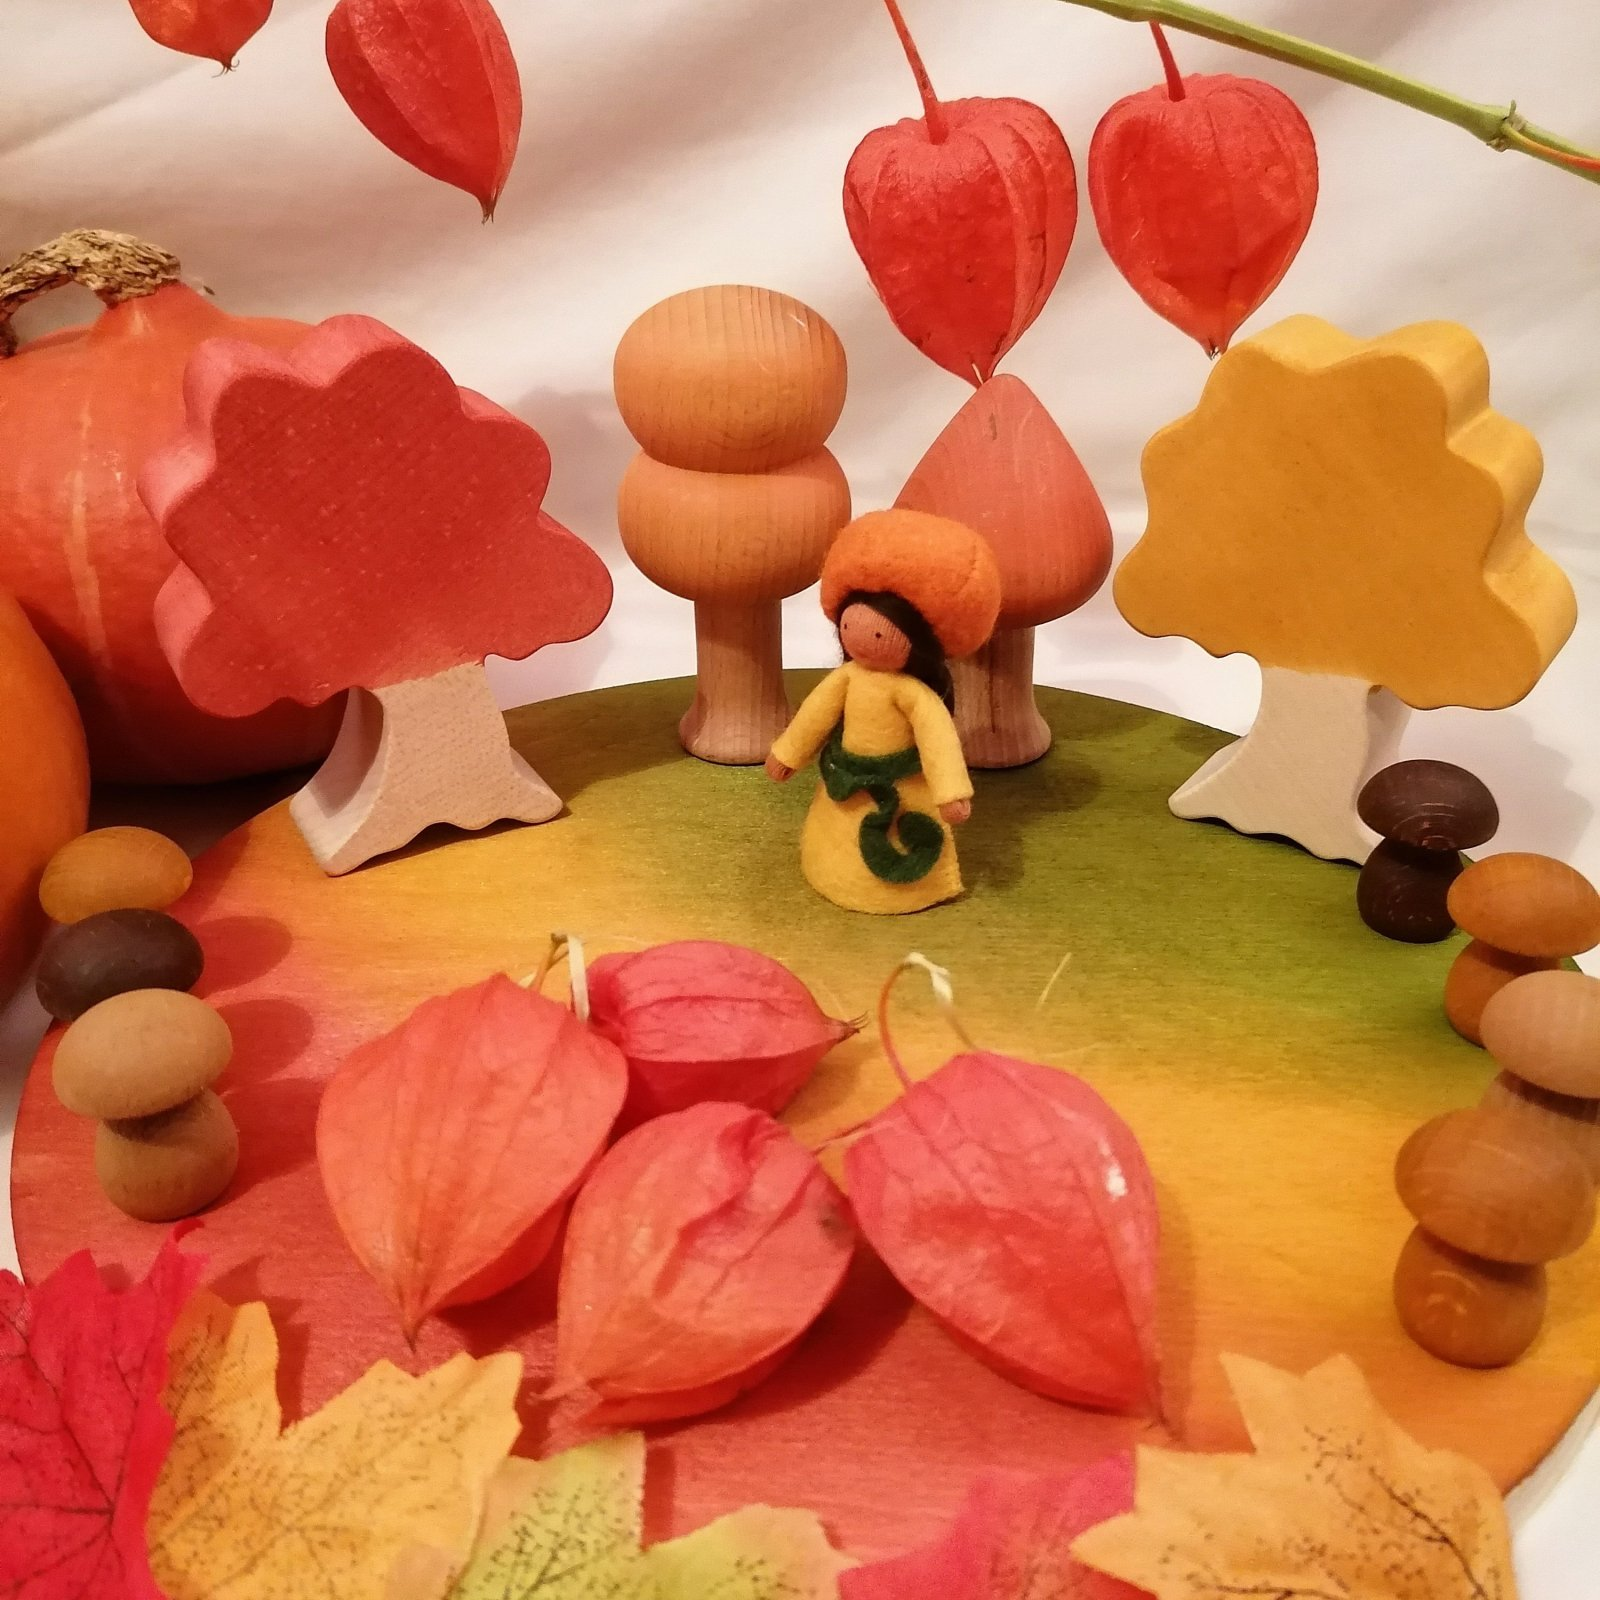 Small world homemade nature table display with woodstained board and trees with Ambrosious Pumkin fairy and natural loose parts